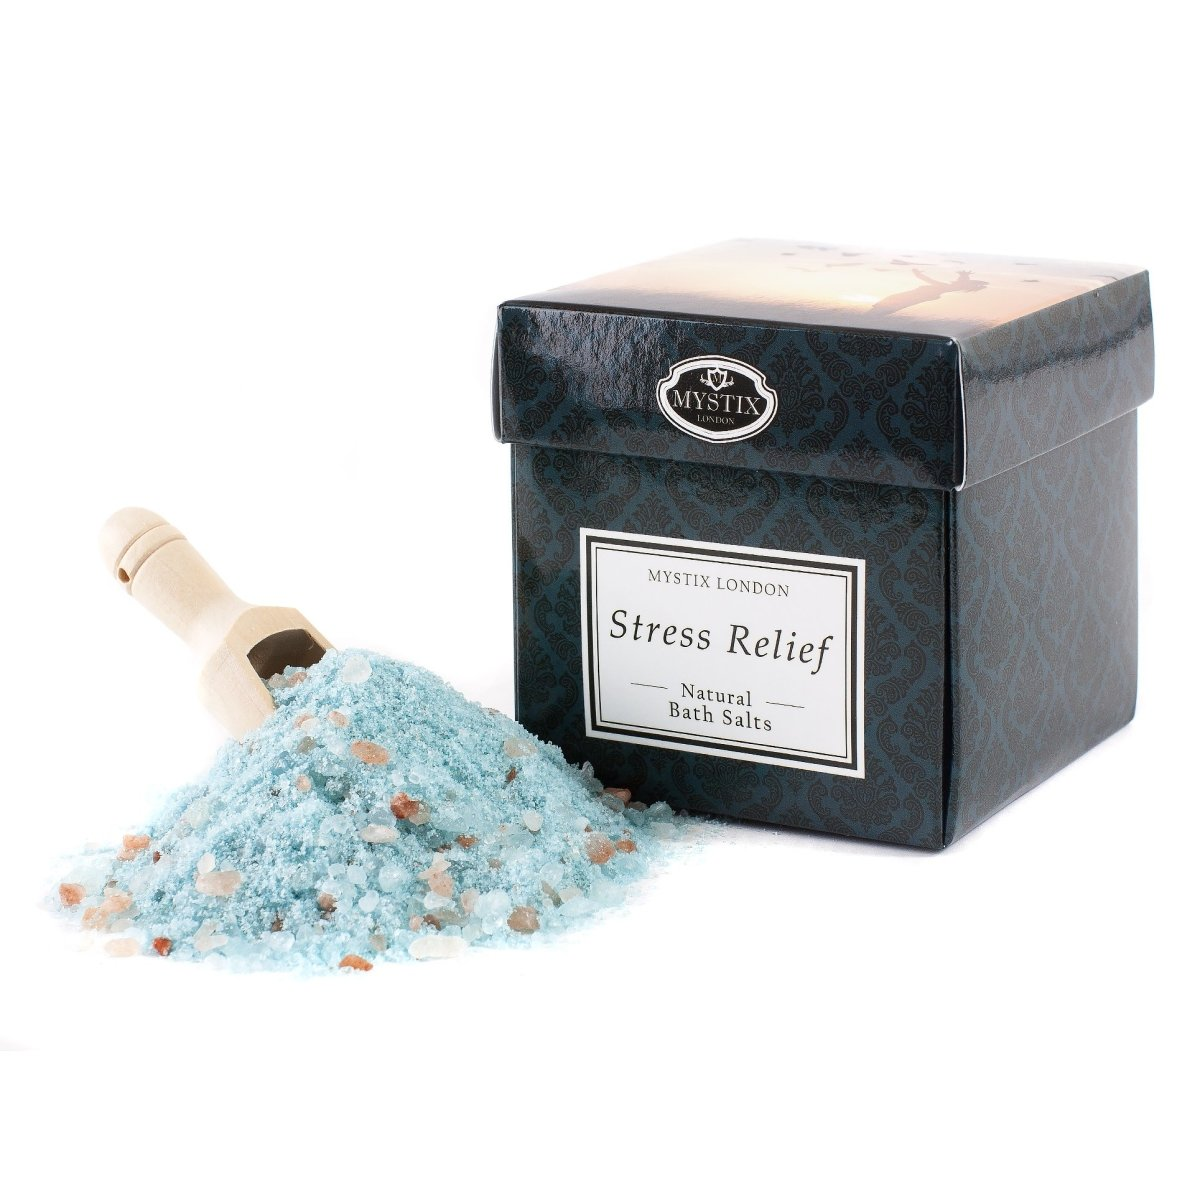 Stress Relief Bath Salt - 350g - Mystic Moments UK